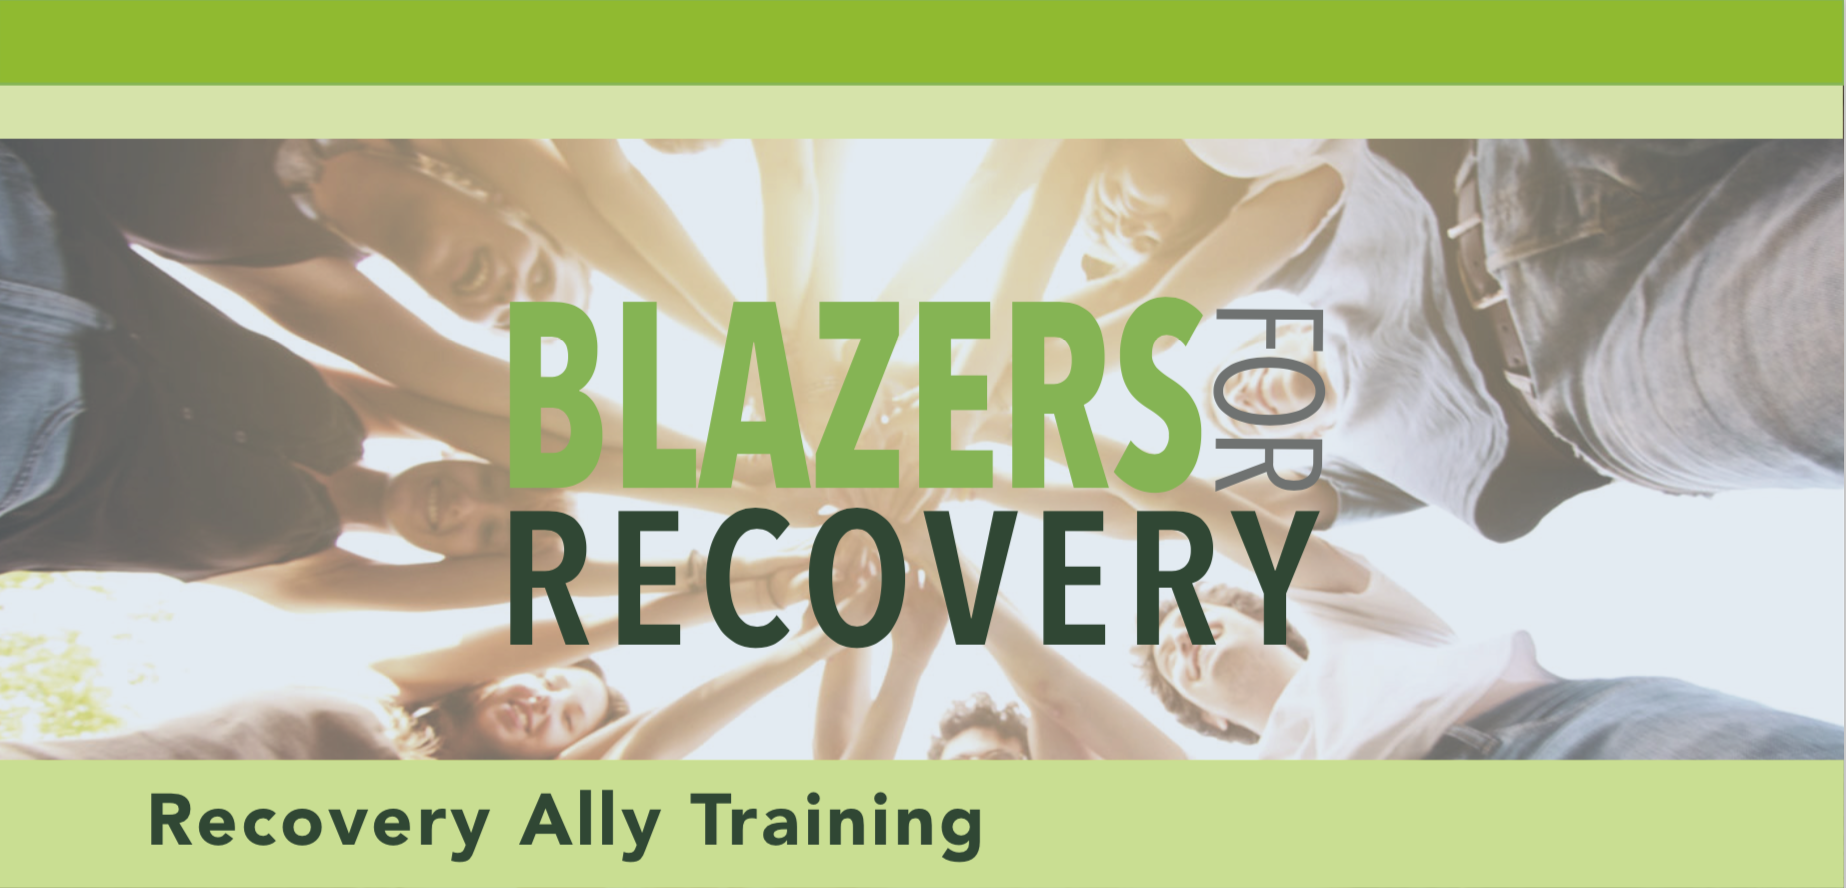 Blazers for Recovery (Recovery Ally Training)